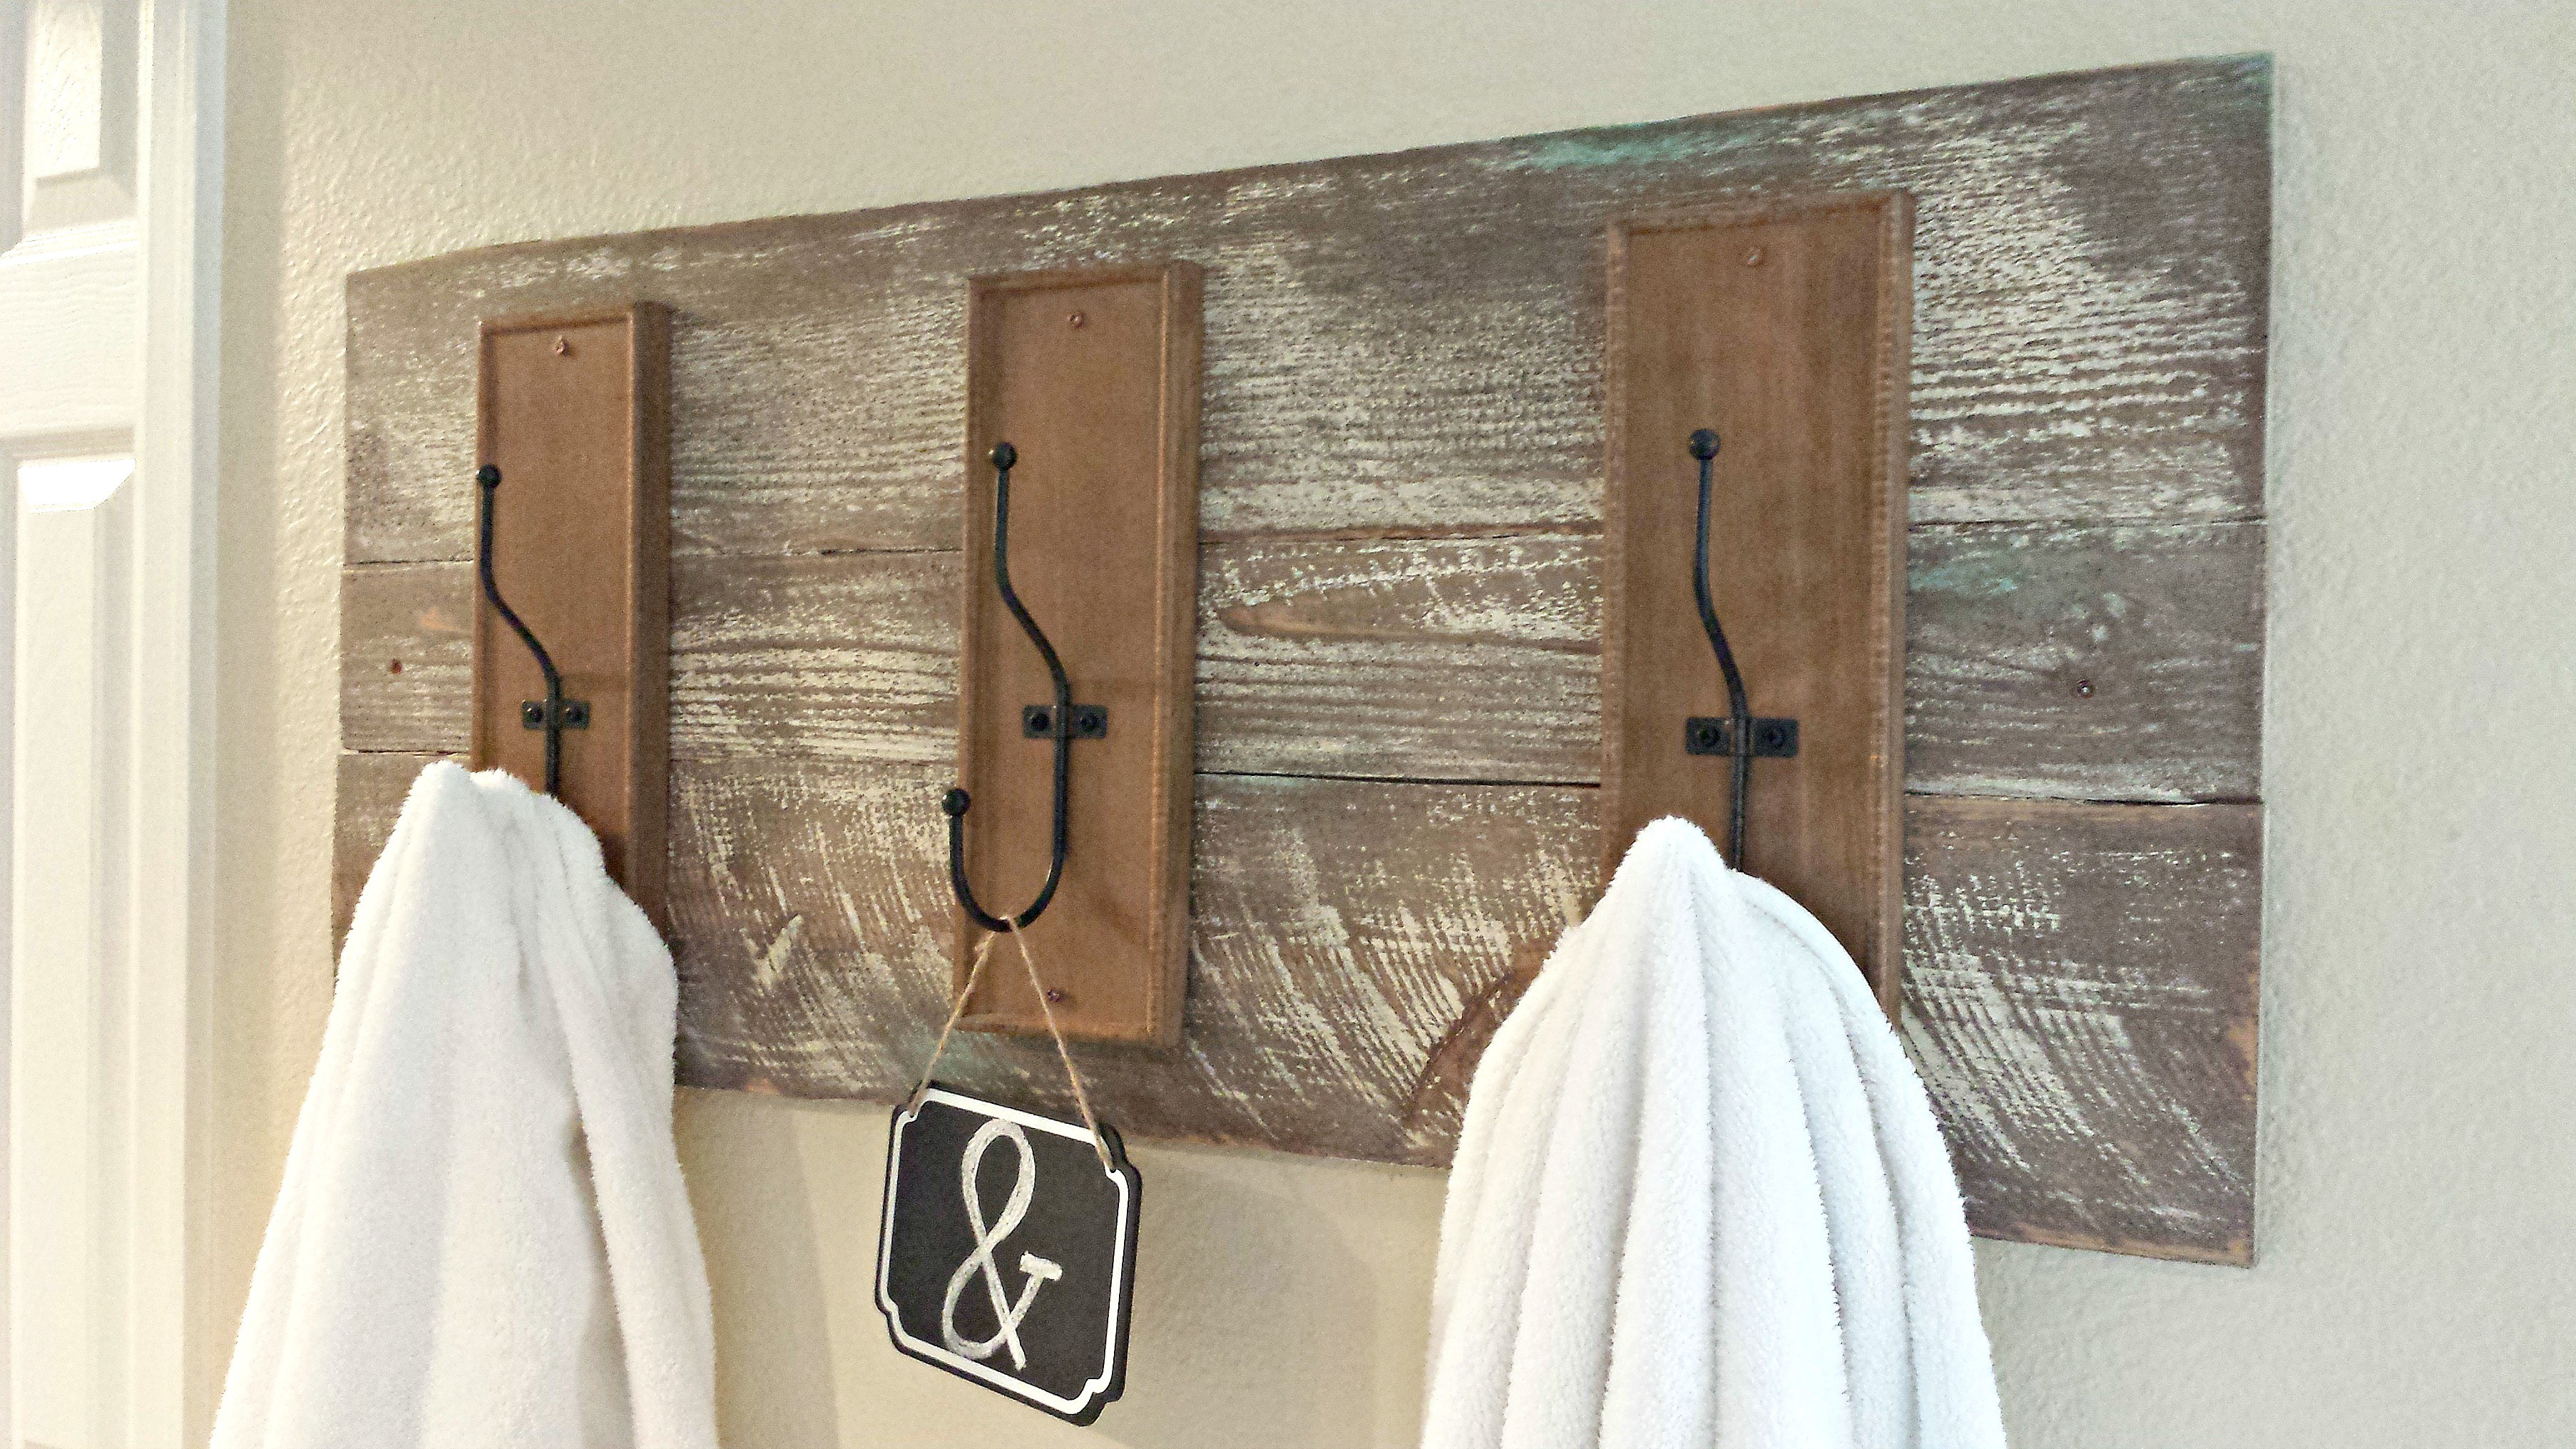 How Do You Like To Hang 6 Ways Your Bathroom Towels